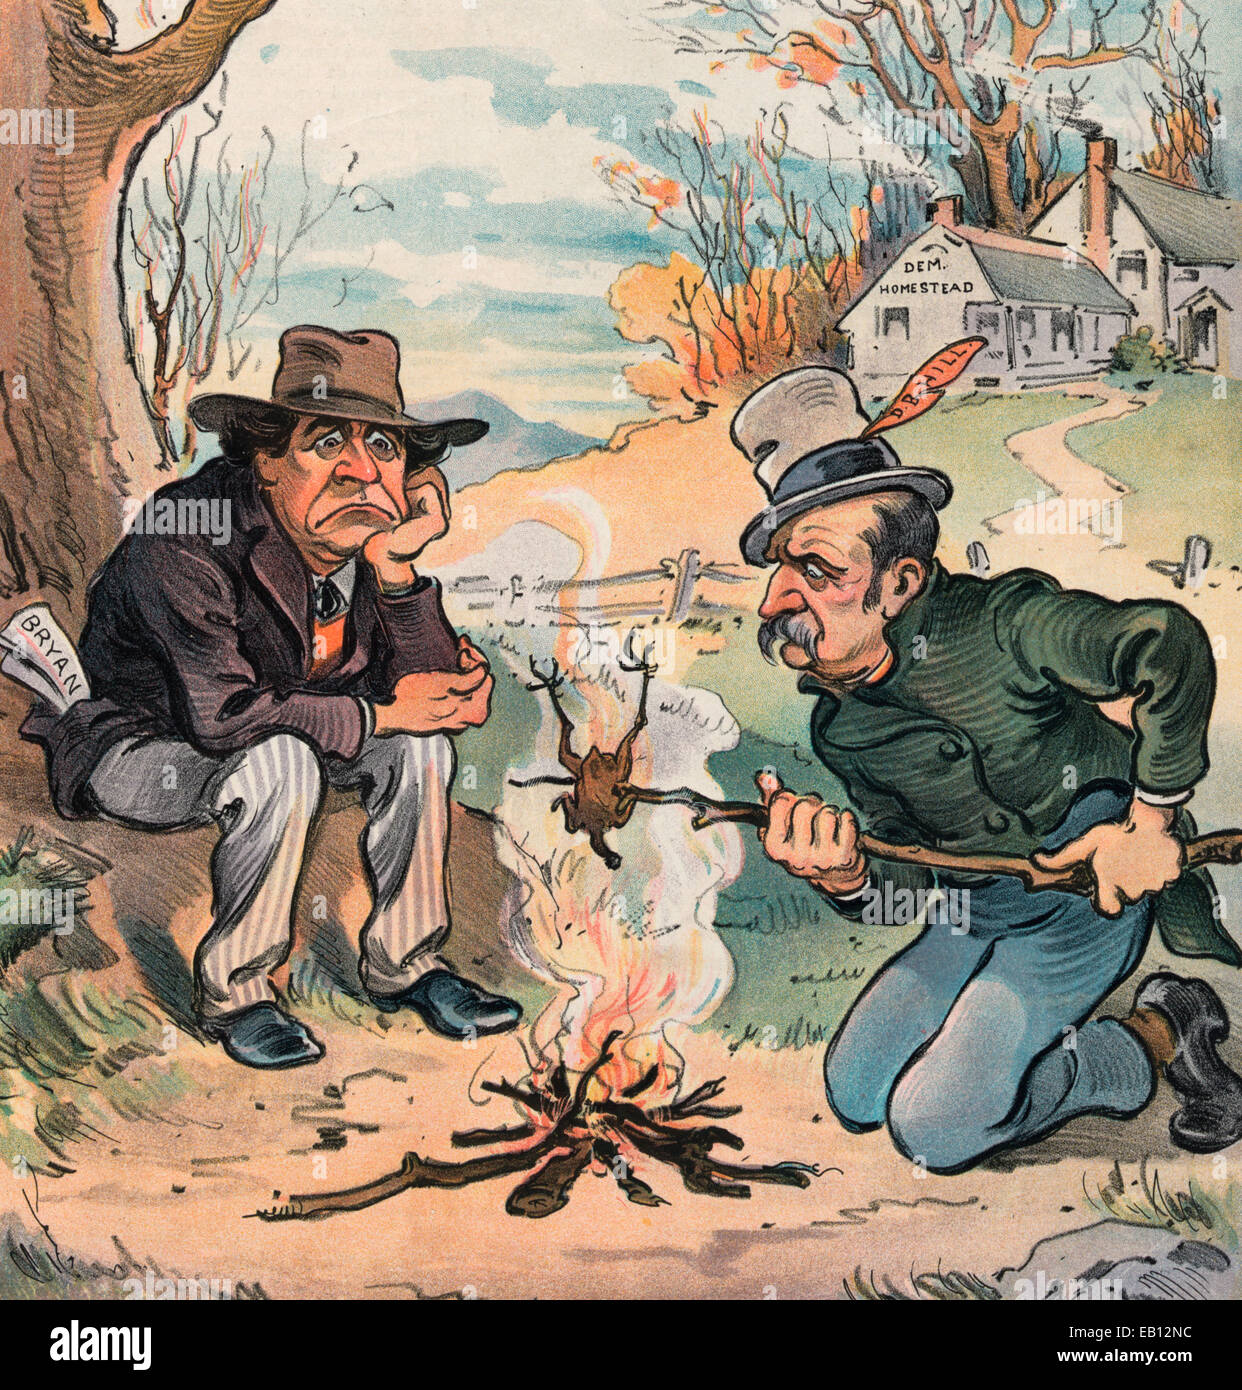 Thanksgiving Festivities - Dismal Dave and Weary William join in celebrating. Illustration shows William Jennings - Stock Image